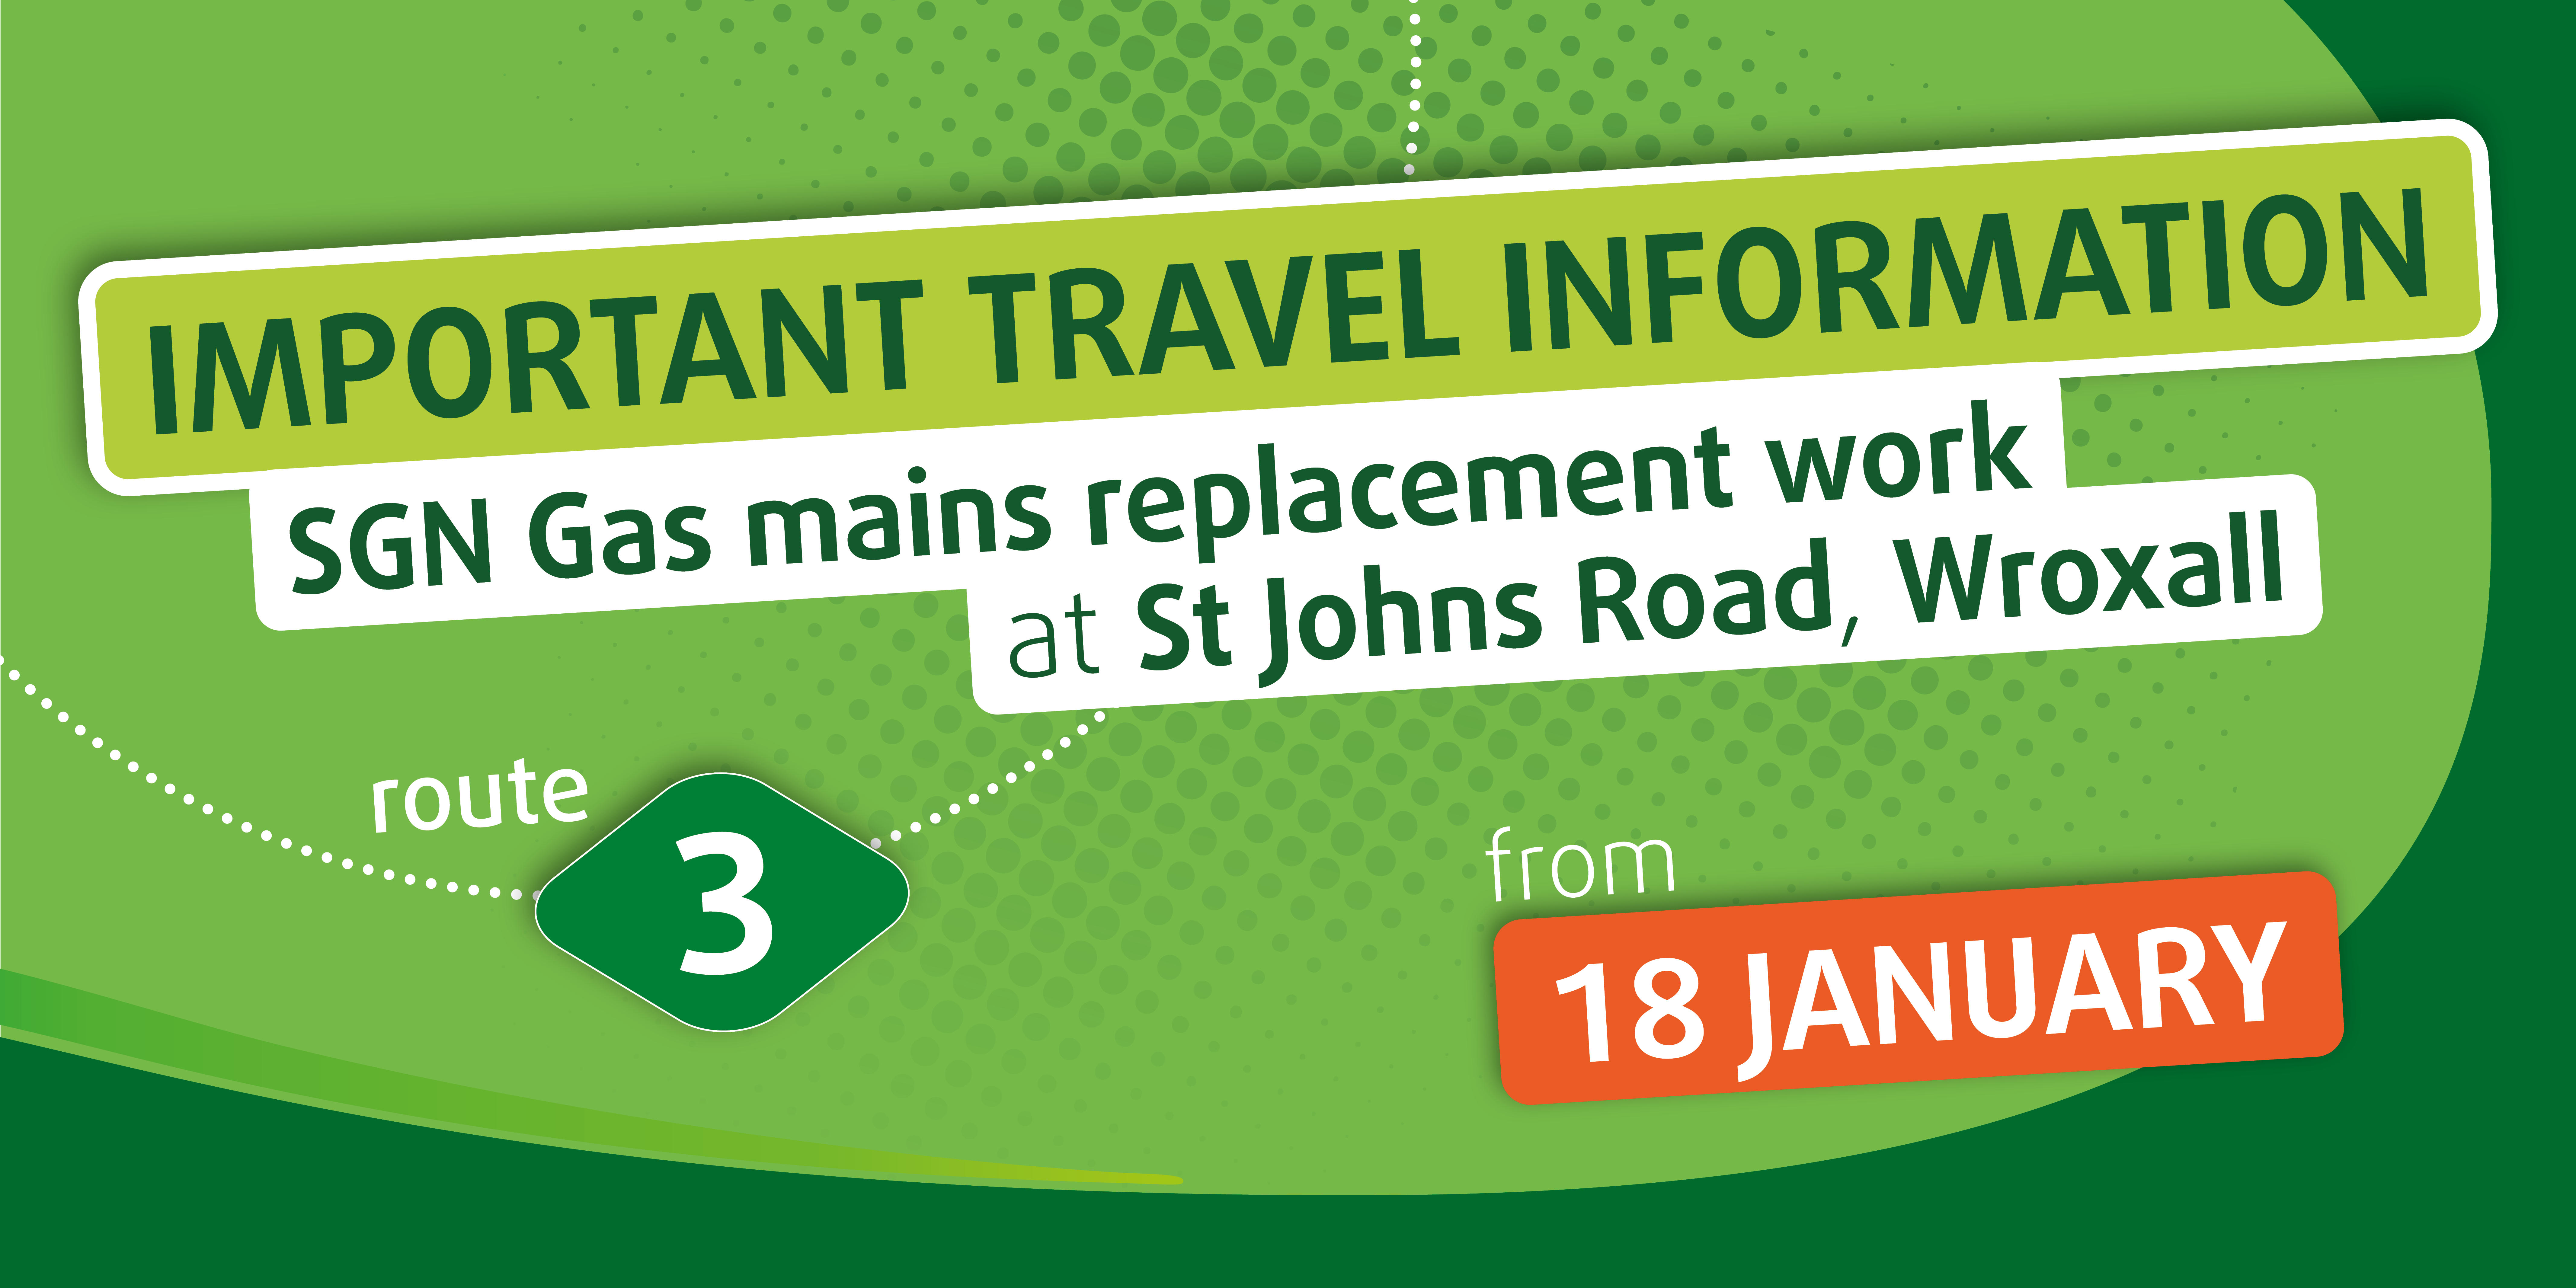 Important Travel Information SGN Gas mains replacement work at St Johns Road, Wroxall route 3 from 18 January